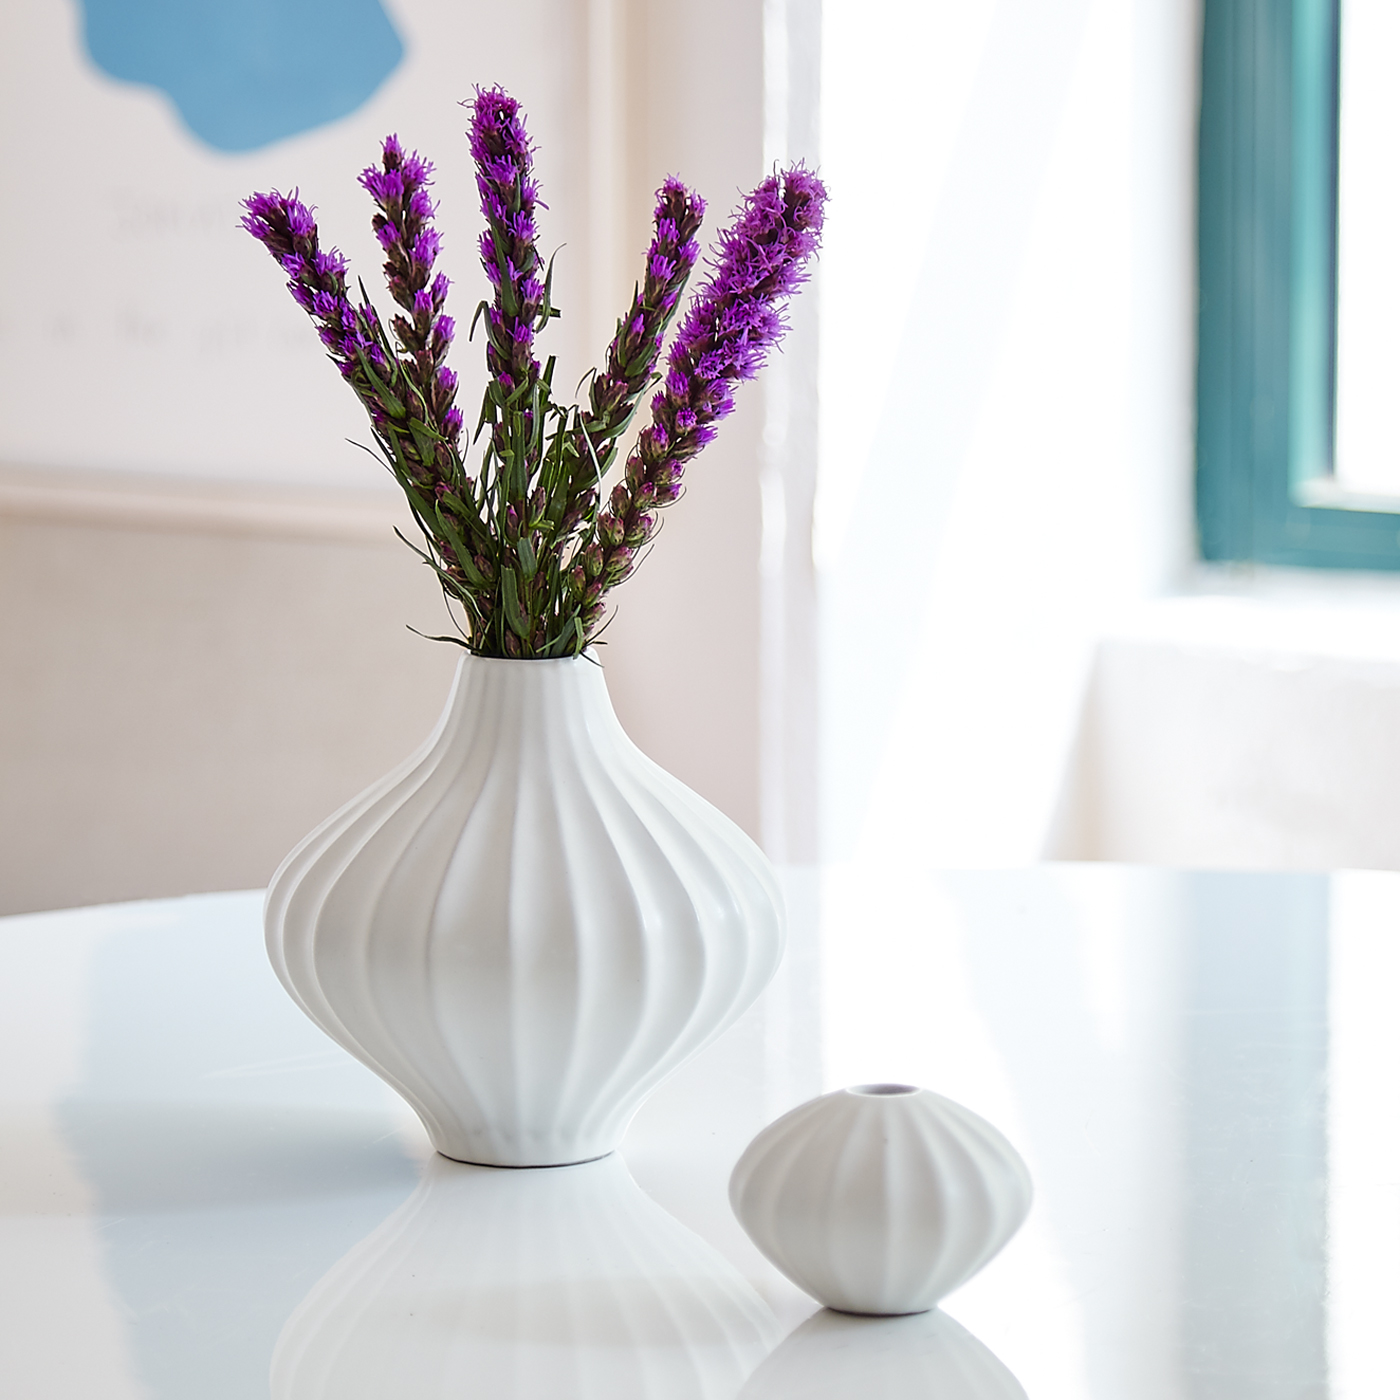 White ceramic vases from Jonathan Adler